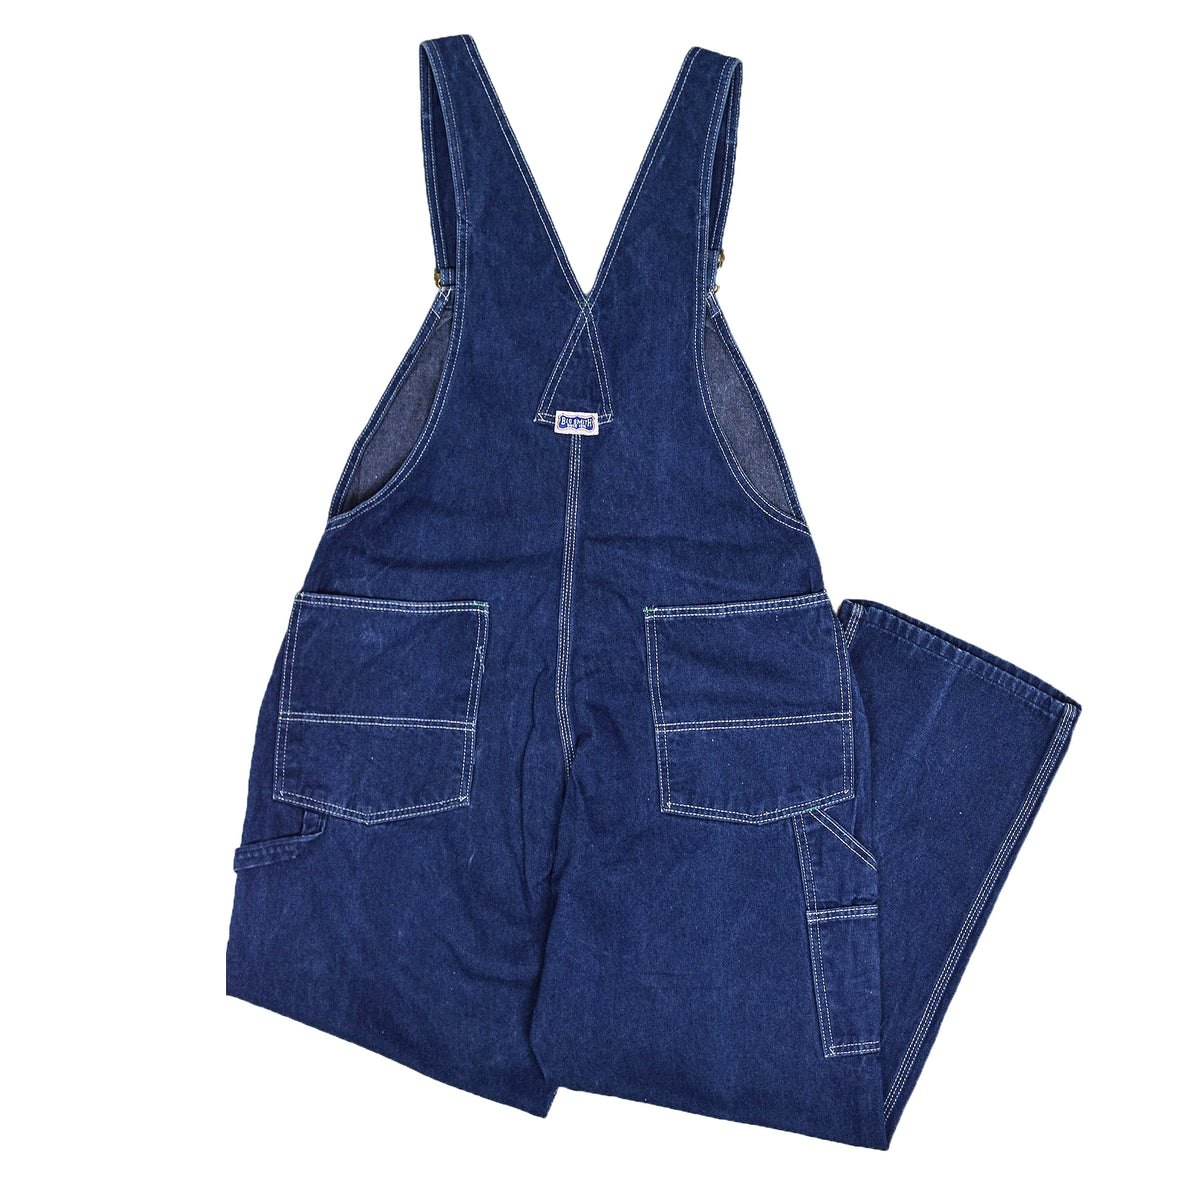 Vintage Big Smith Denim Work Dungarees Blue Bib Overalls Trousers M BACK